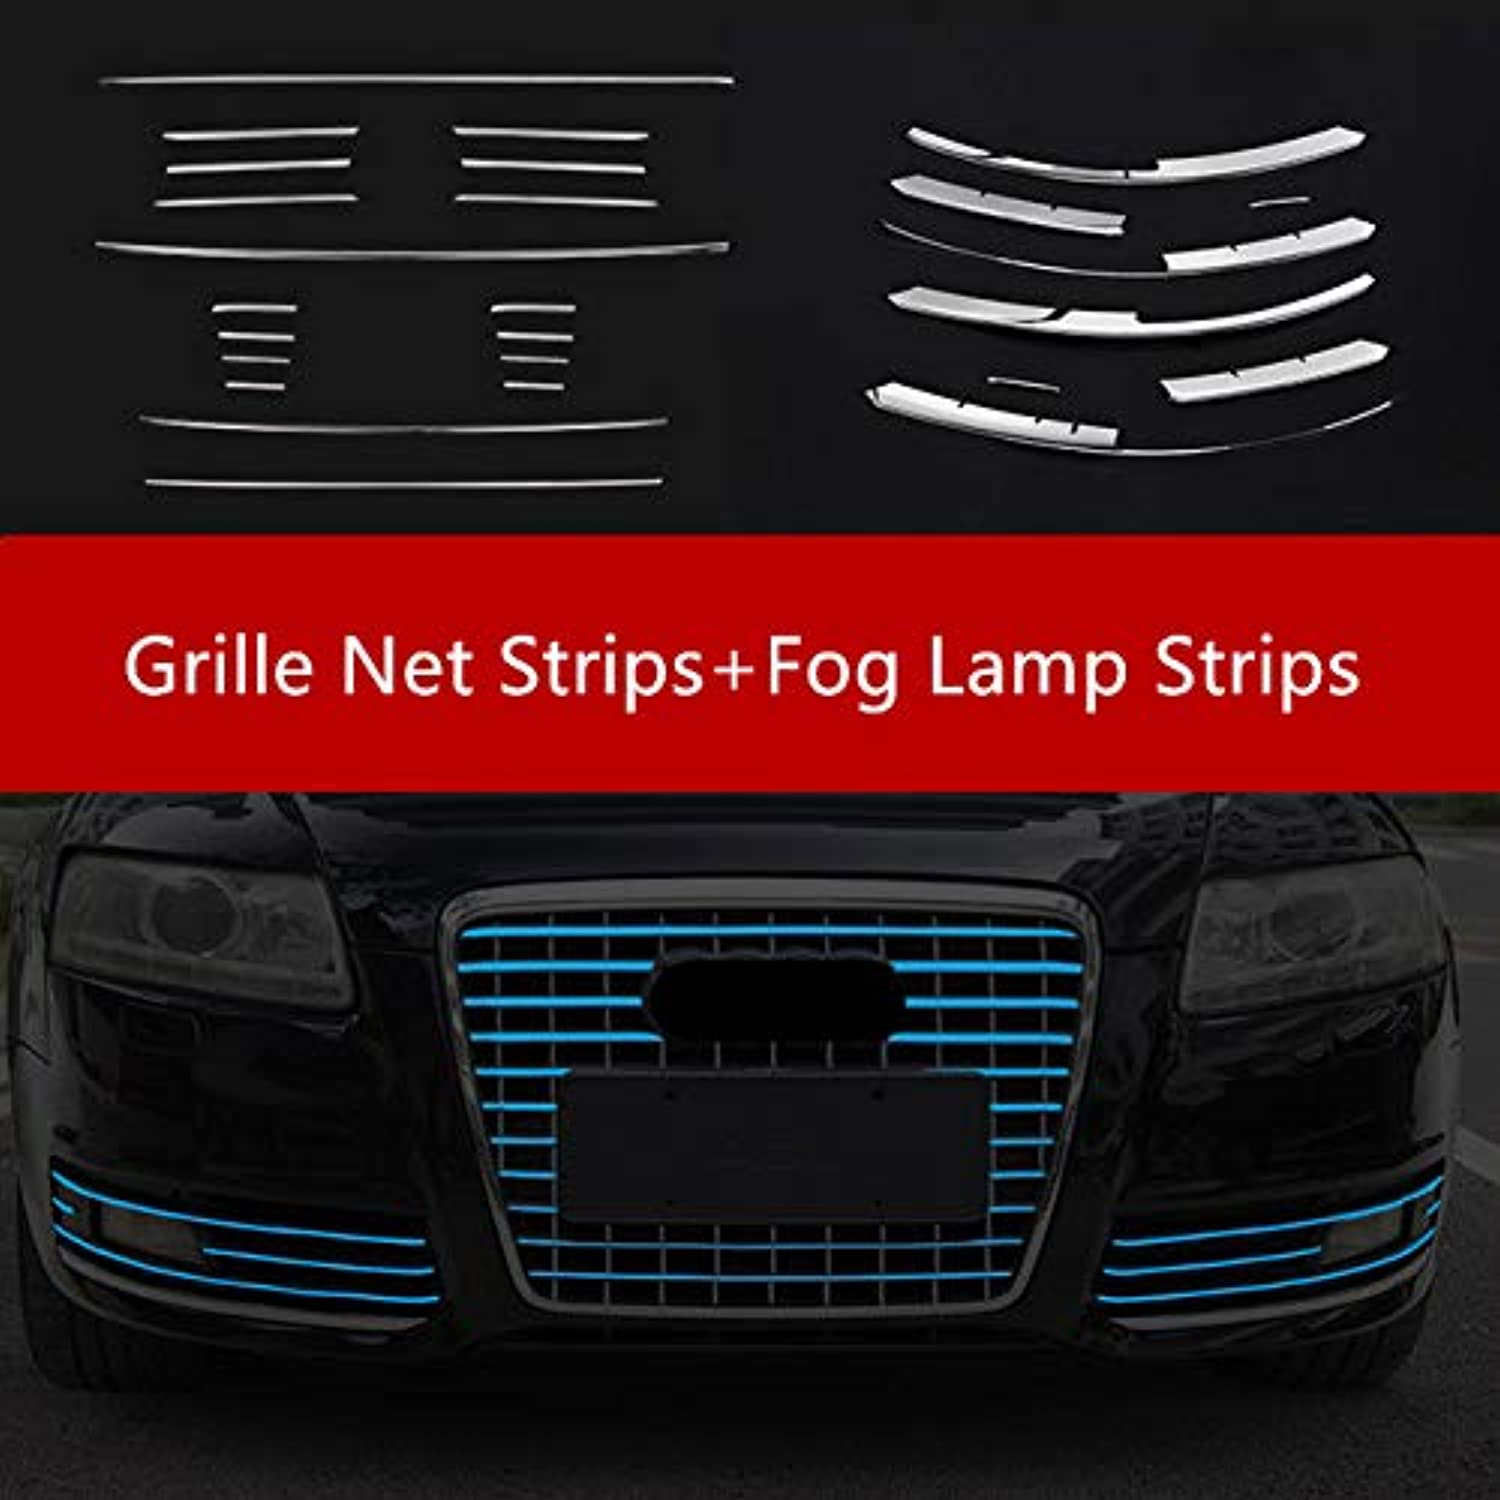 Stainless Steel Front Air Grille Decoration Fog Lights Grill Cover Trim for Audi A6 C6 20092011 Front Fog Lamp Strips  (color Name  26 Pieces)